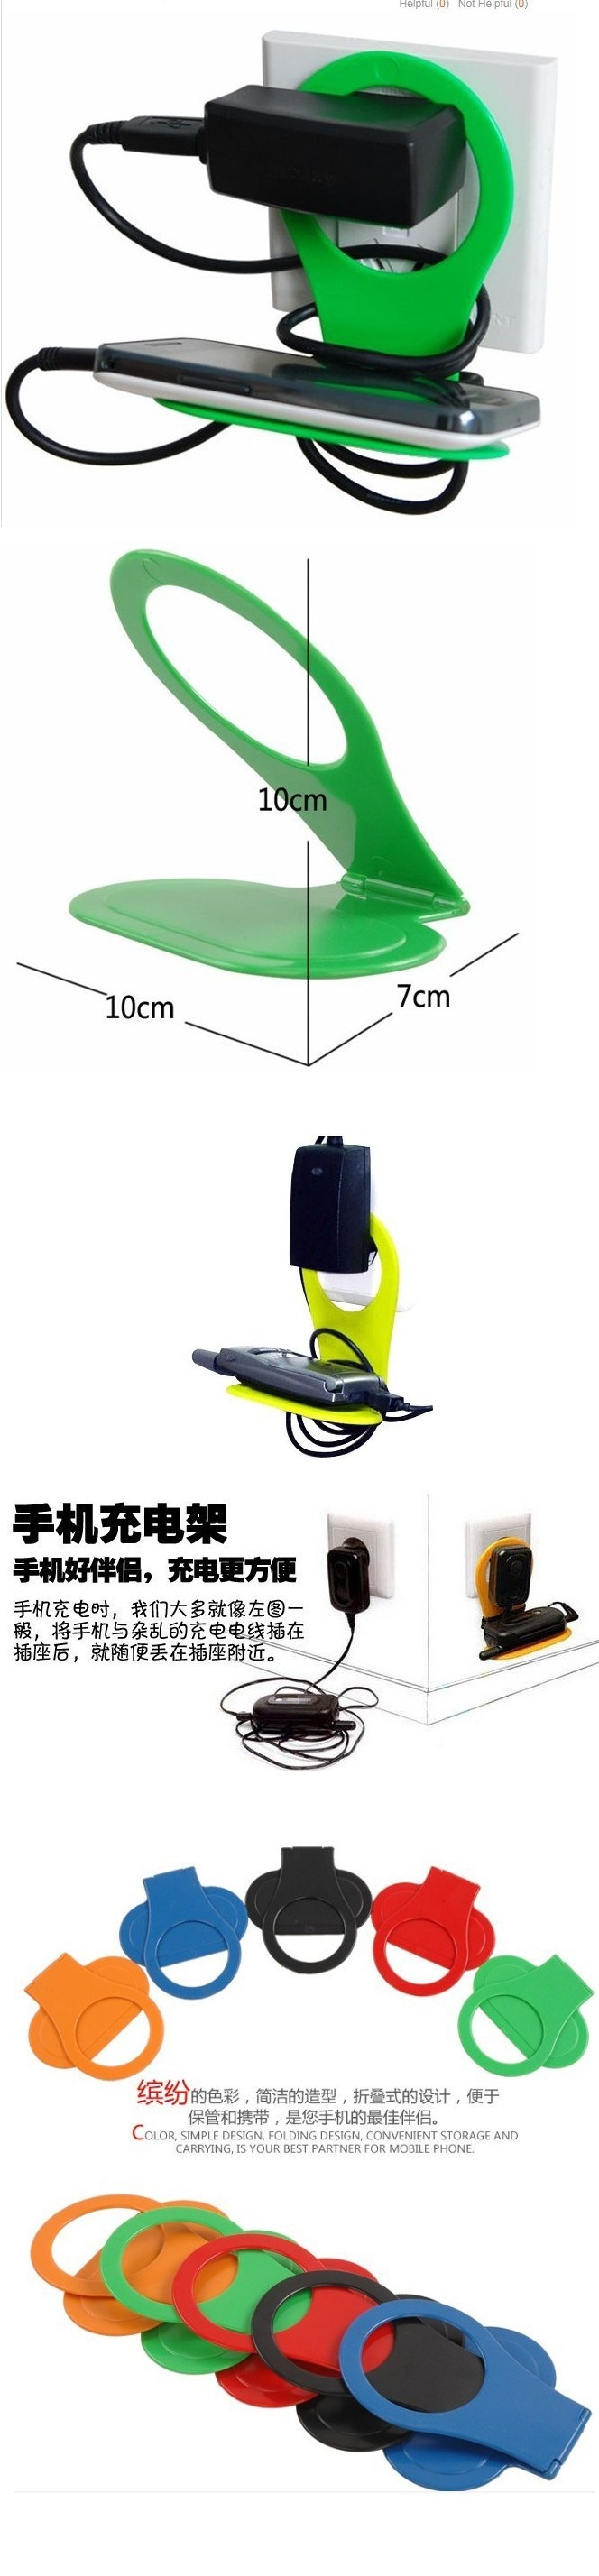 Simple Convenient Phone Charging Rack Holder